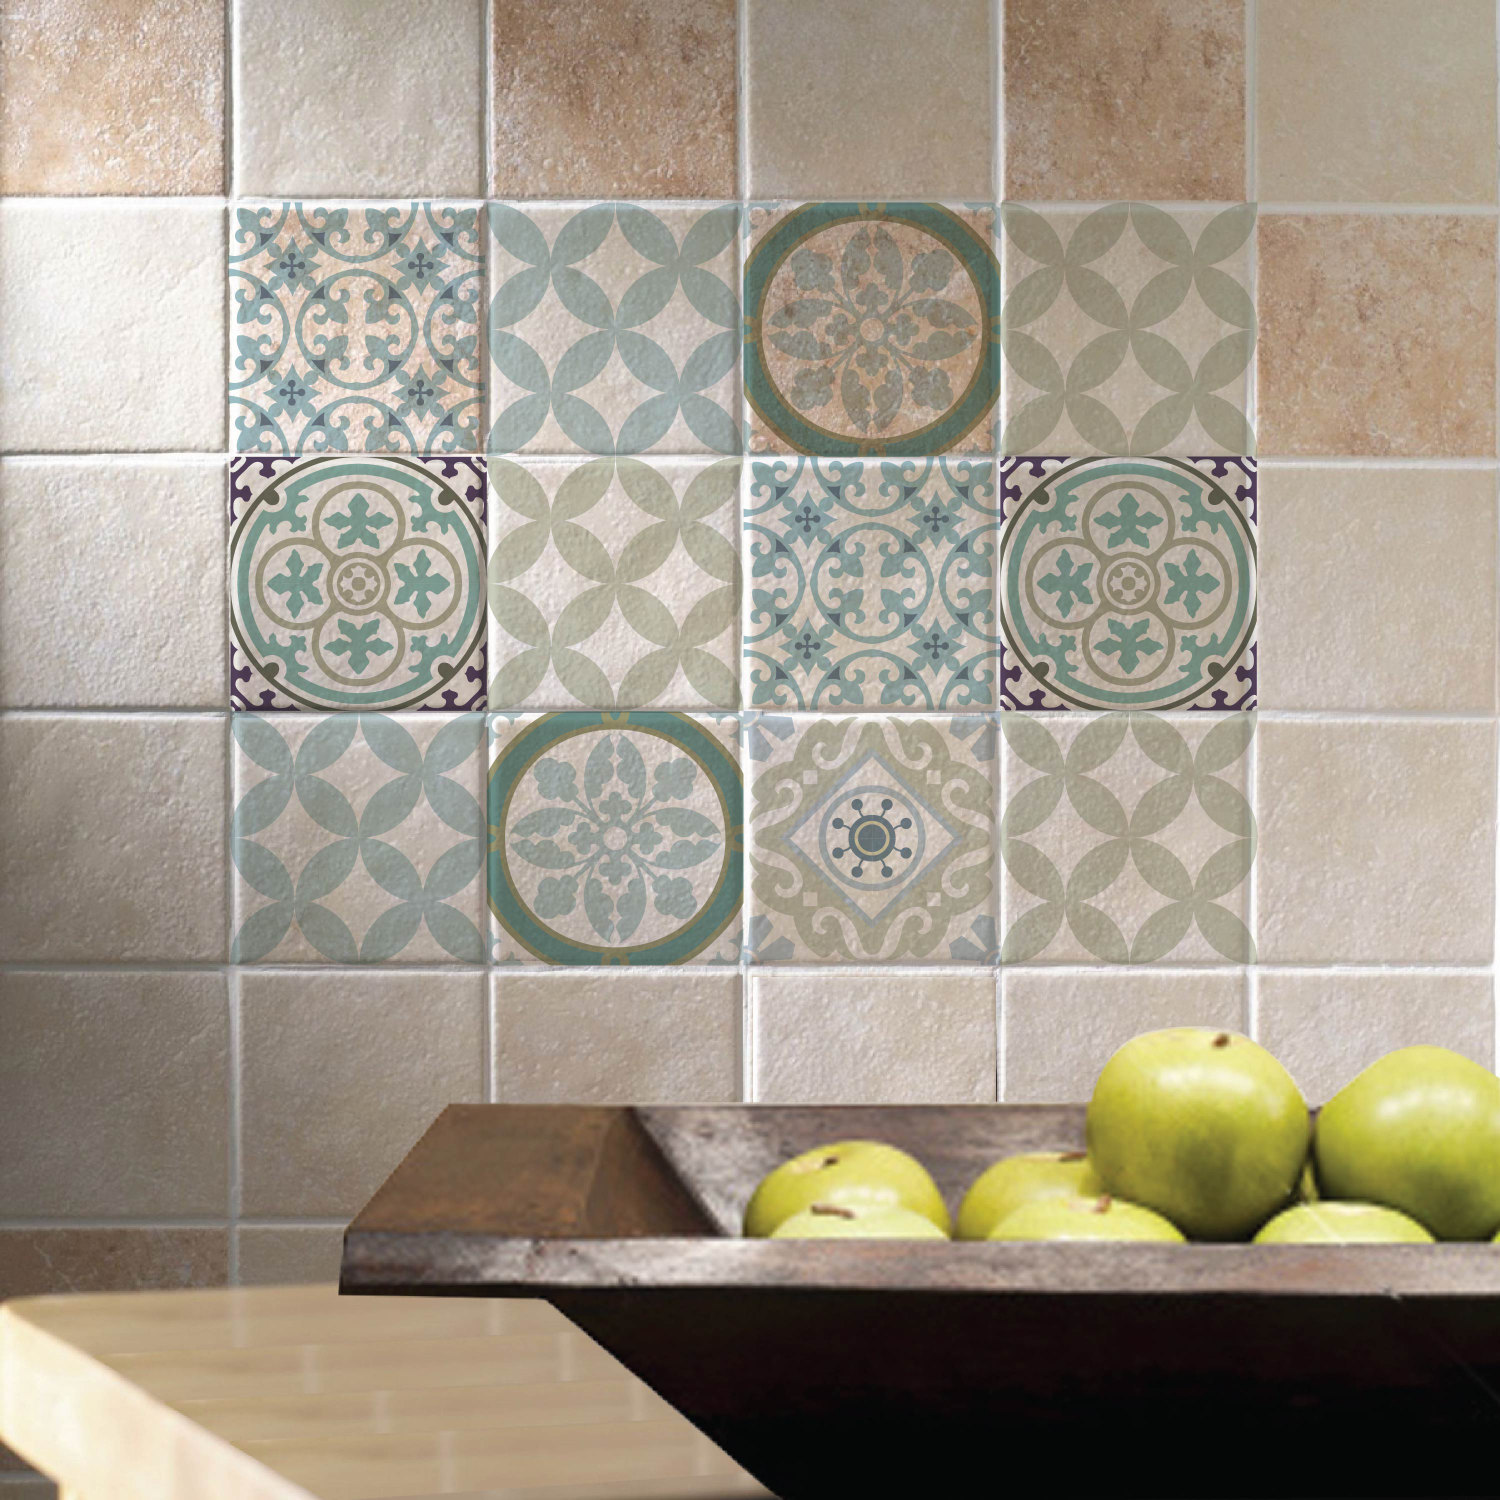 Mix Tile Decals Kitchen Bathroom Tiles Vinyl Floor Free Design 314